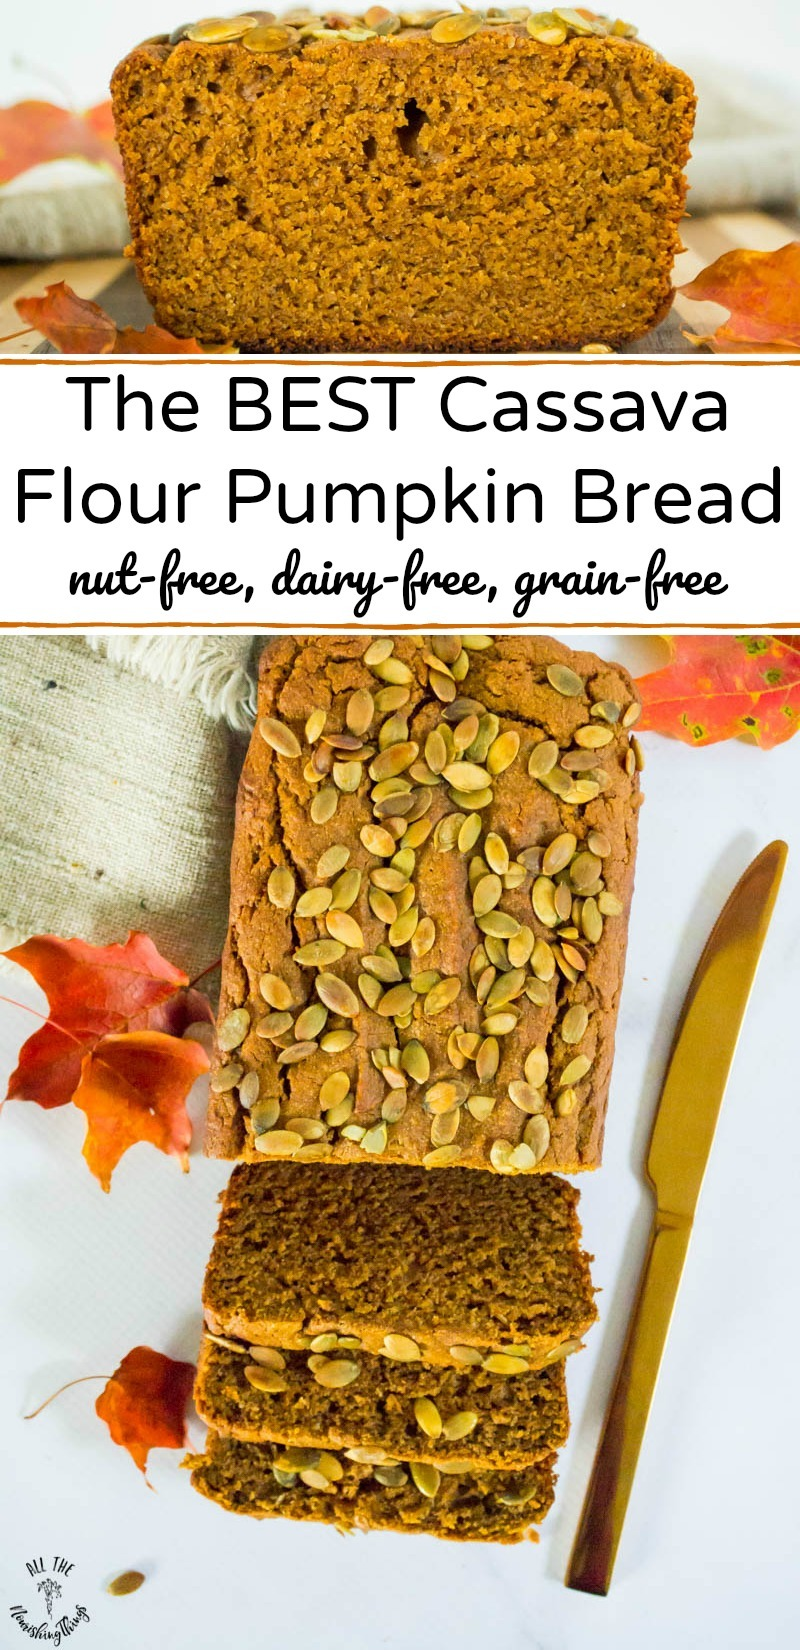 collage of 2 images of best cassava flour pumpkin bread with text overlay between the images